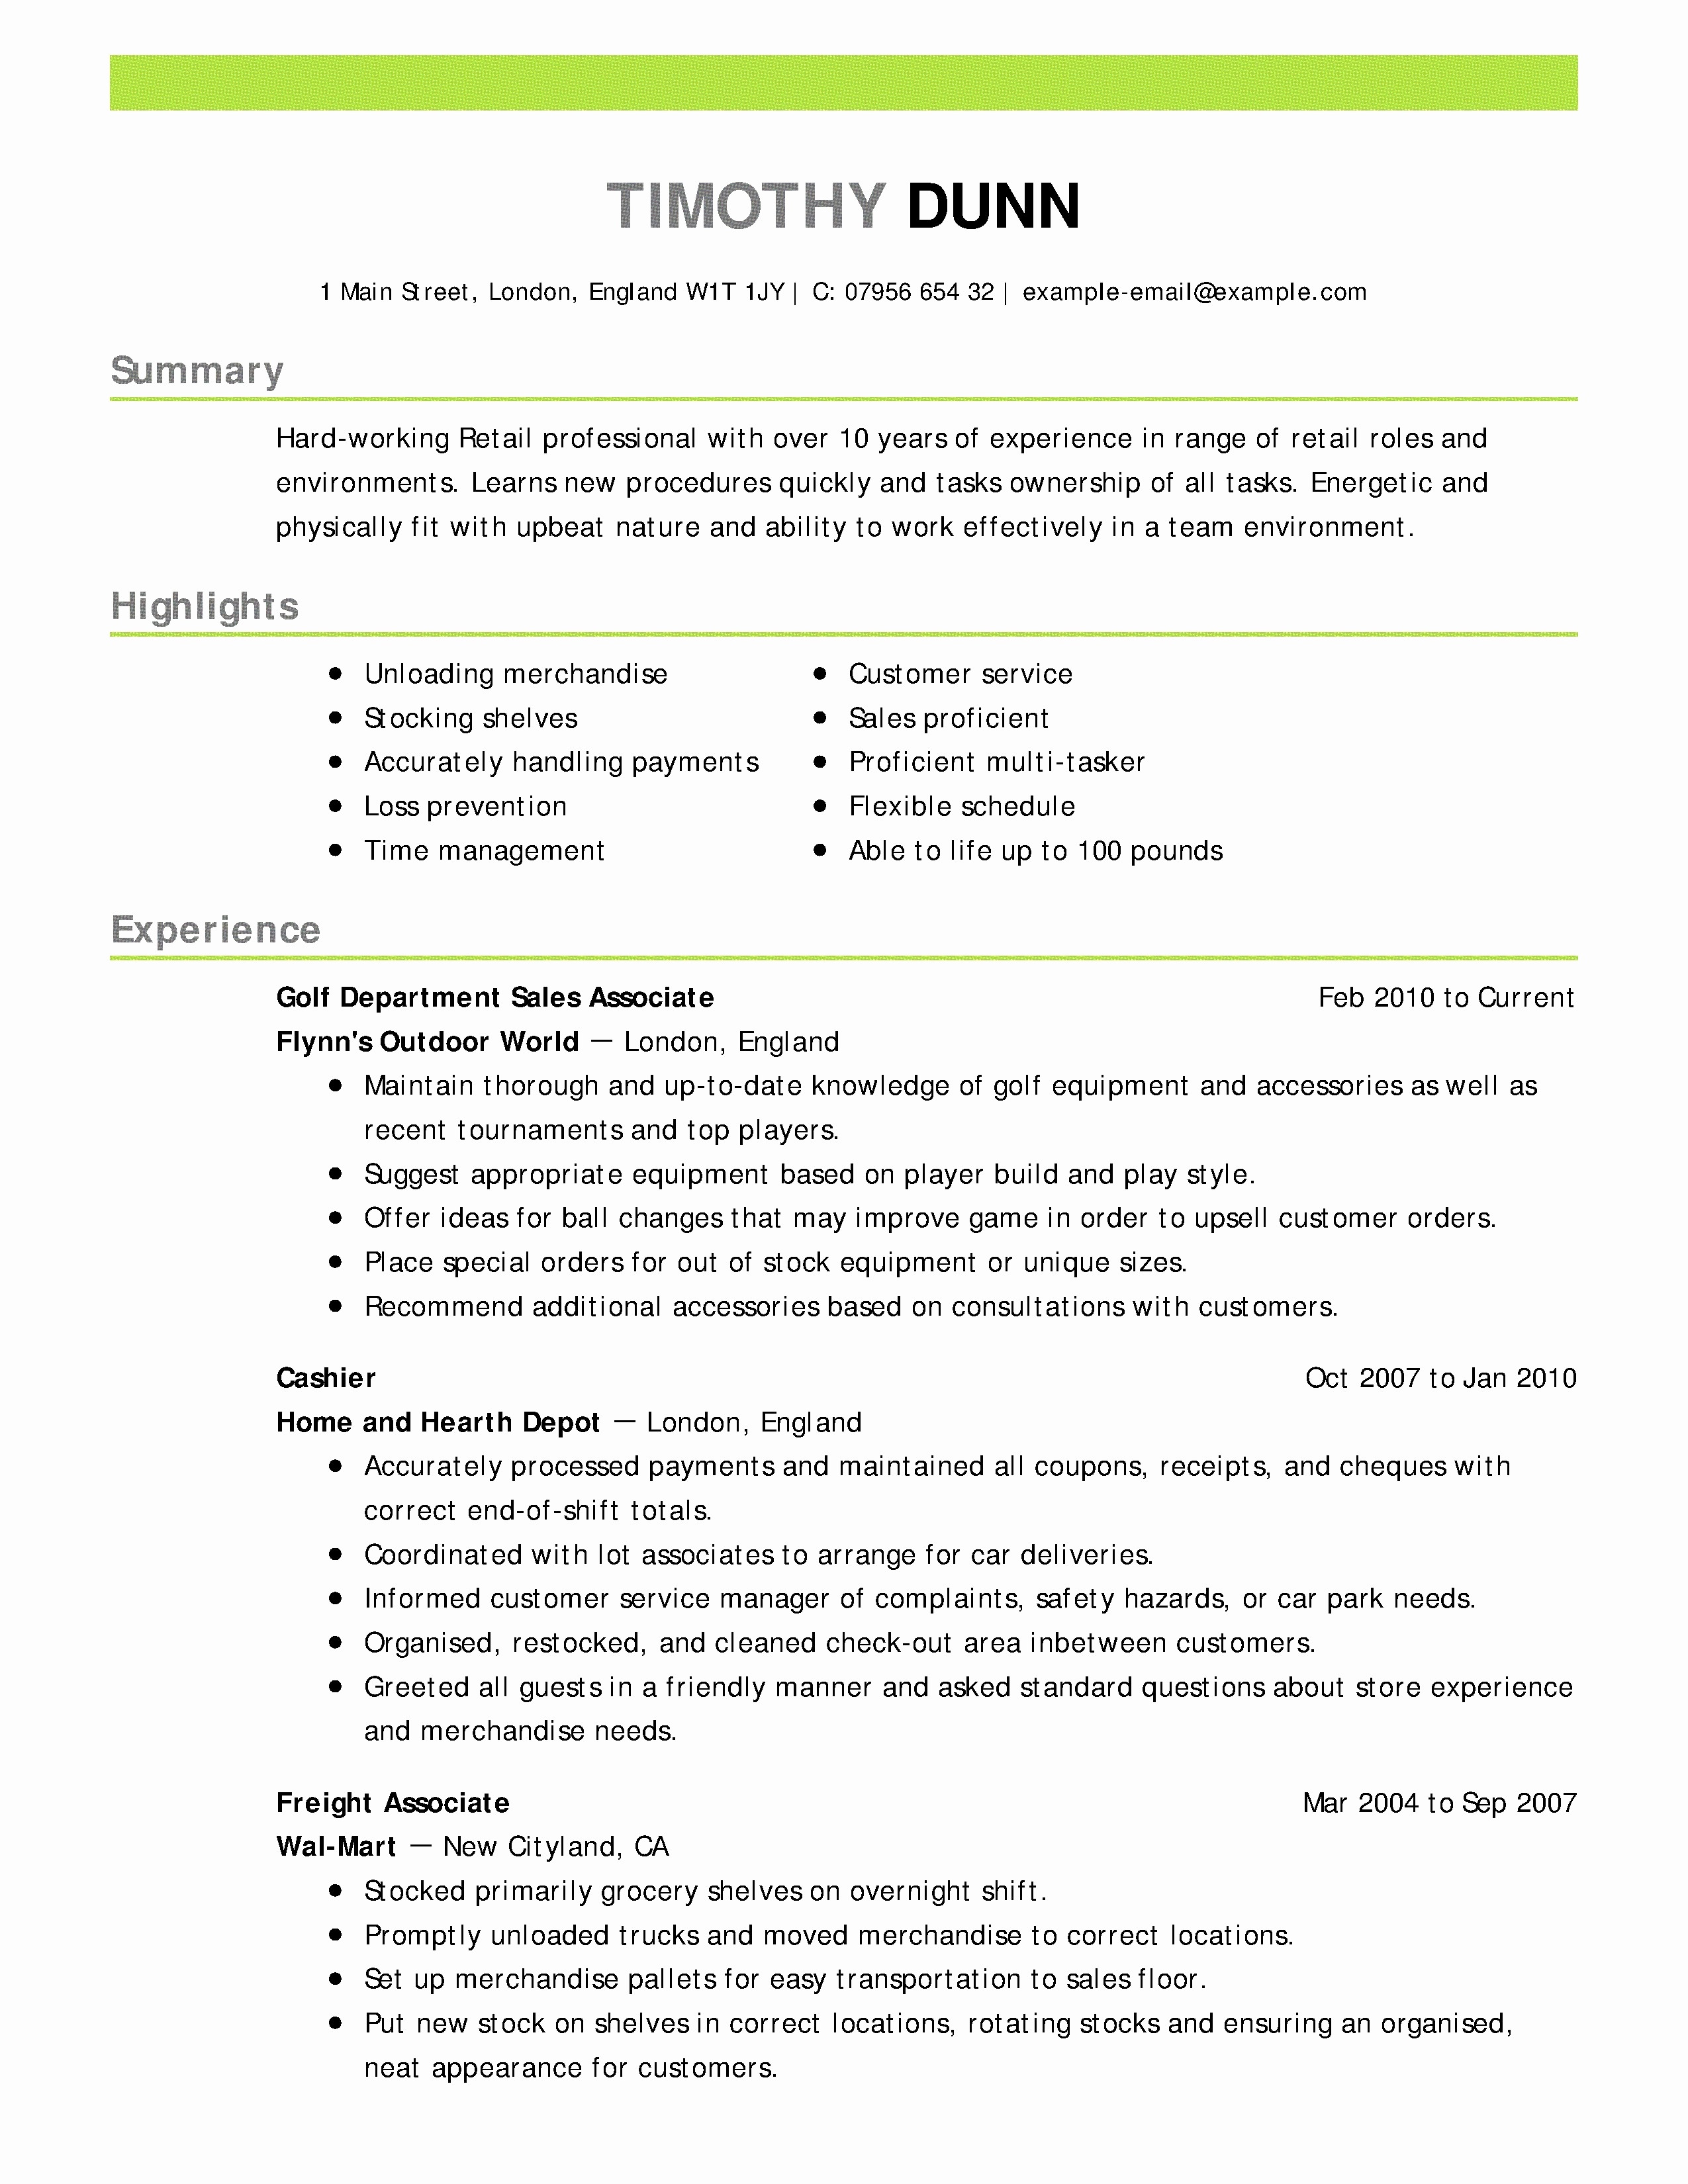 car submerged in water resume example-Car Detailer Job Description Resume Inspirational 44 Beautiful Objective Resume Examples Graph 6-m